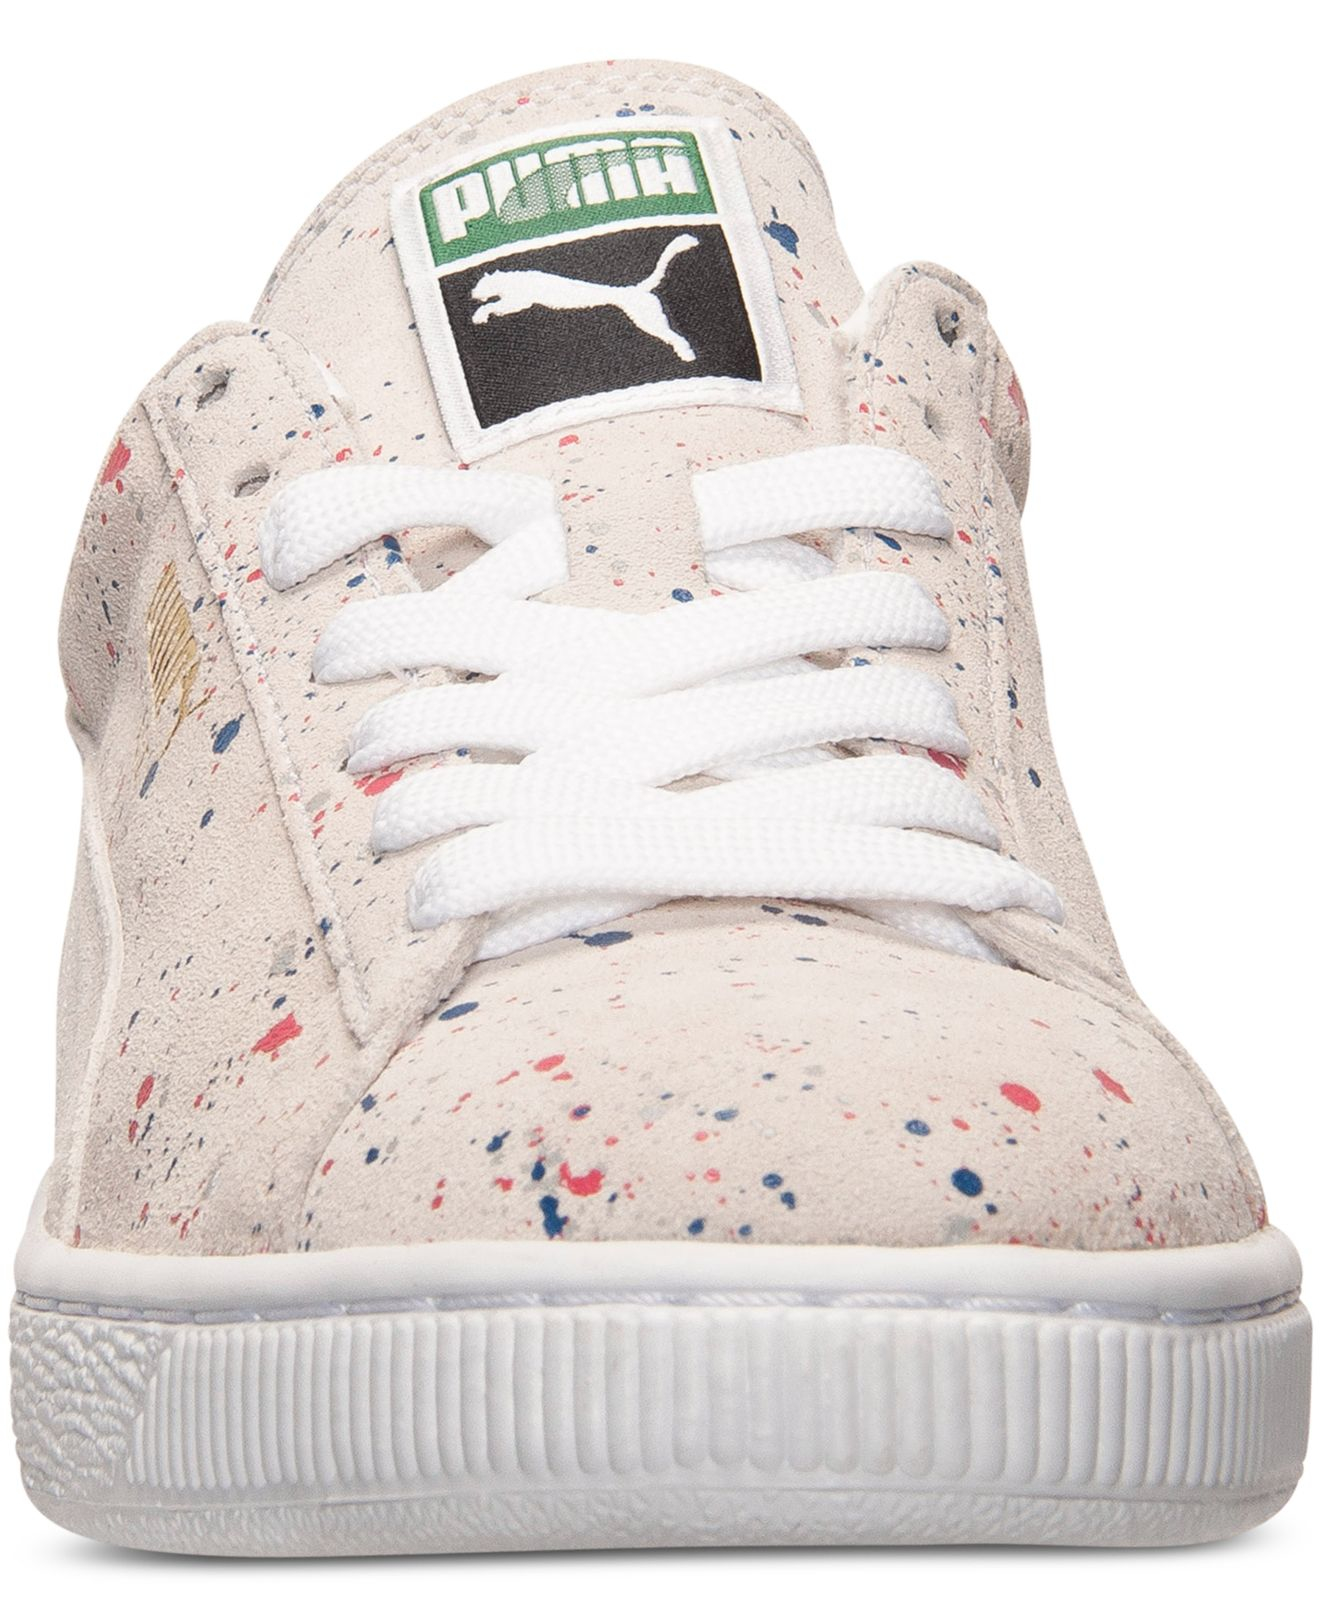 Lyst - PUMA Men s Suede Classic Splatter Casual Sneakers From Finish ... 743a42e72